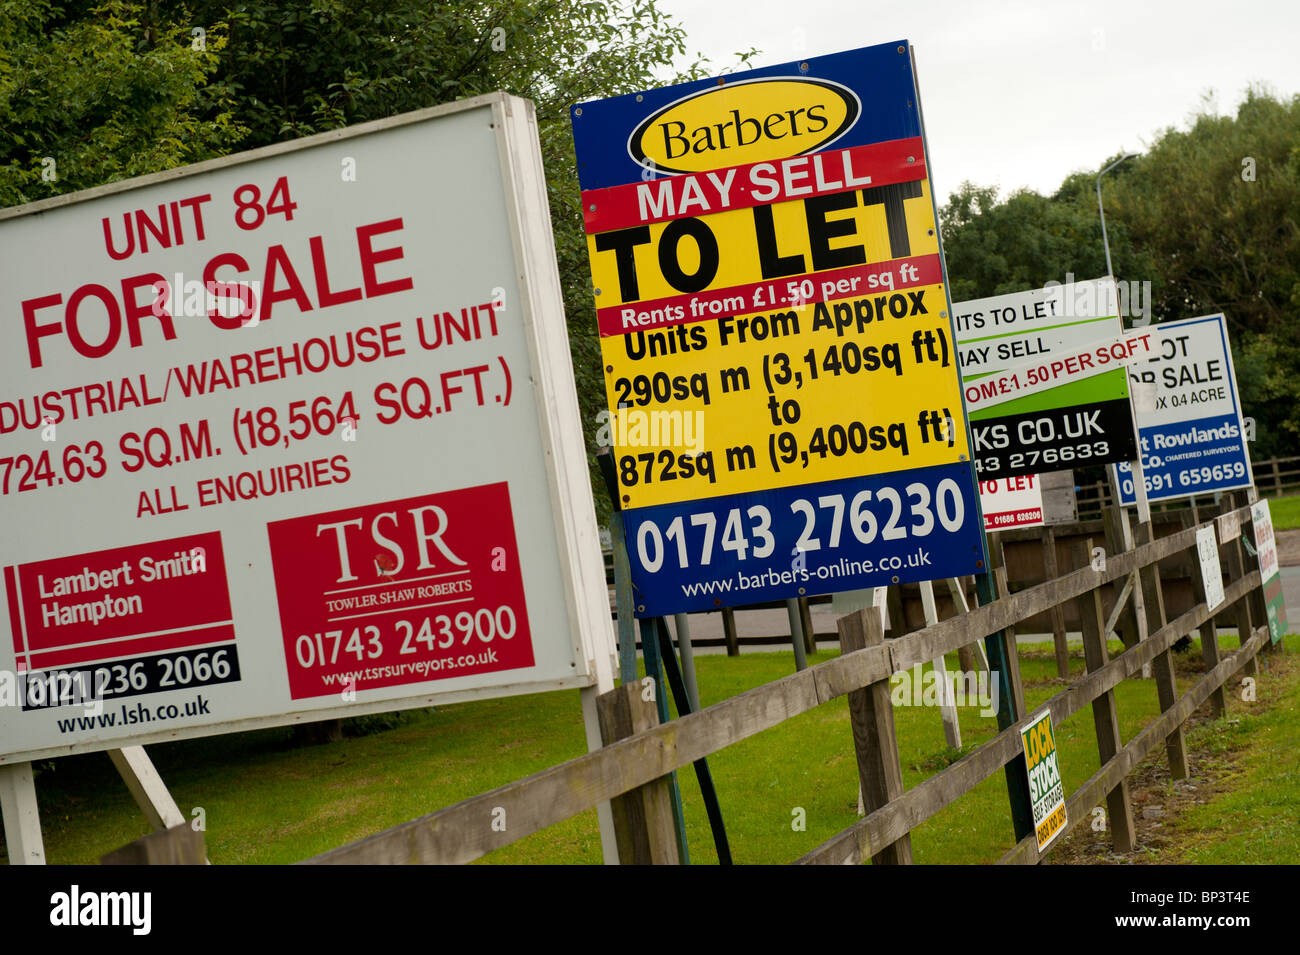 To Let and For sale for commercial properties, Newtown, Powys Wales UK - Stock Image